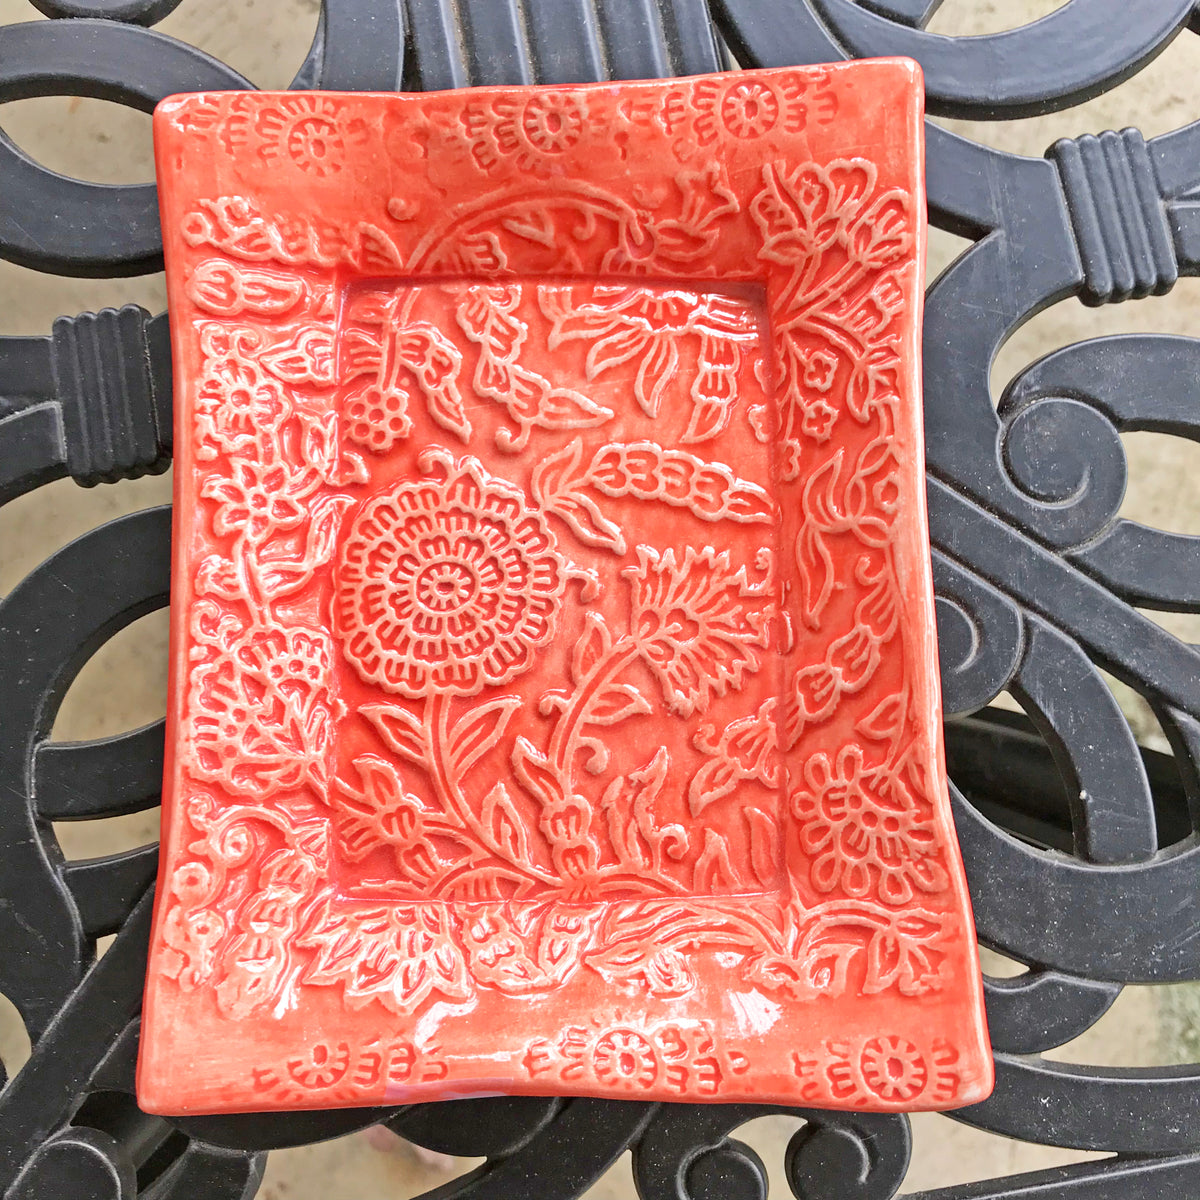 Handmade Ceramic Tray, Coral Color, With Deeply Embossed Floral Design.  5 x 7 ""